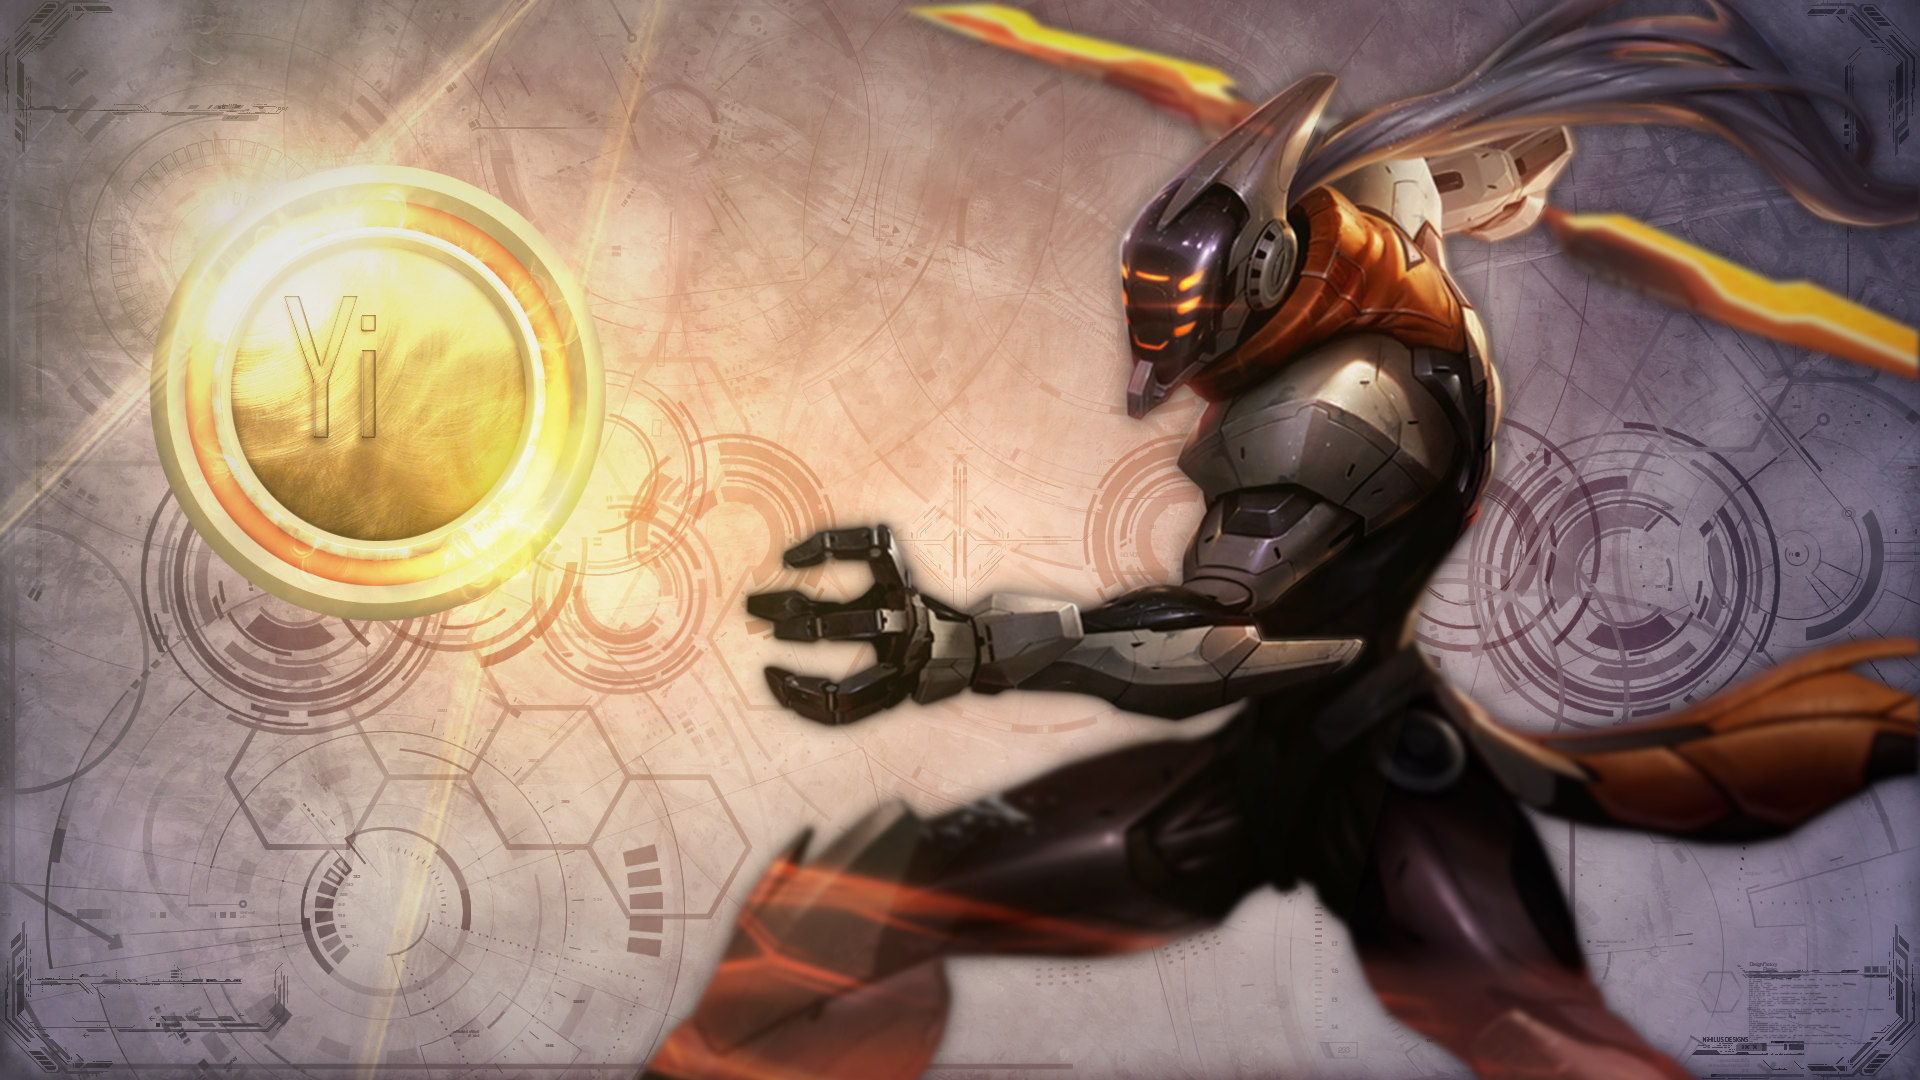 Project Master Yi Lolwallpapers